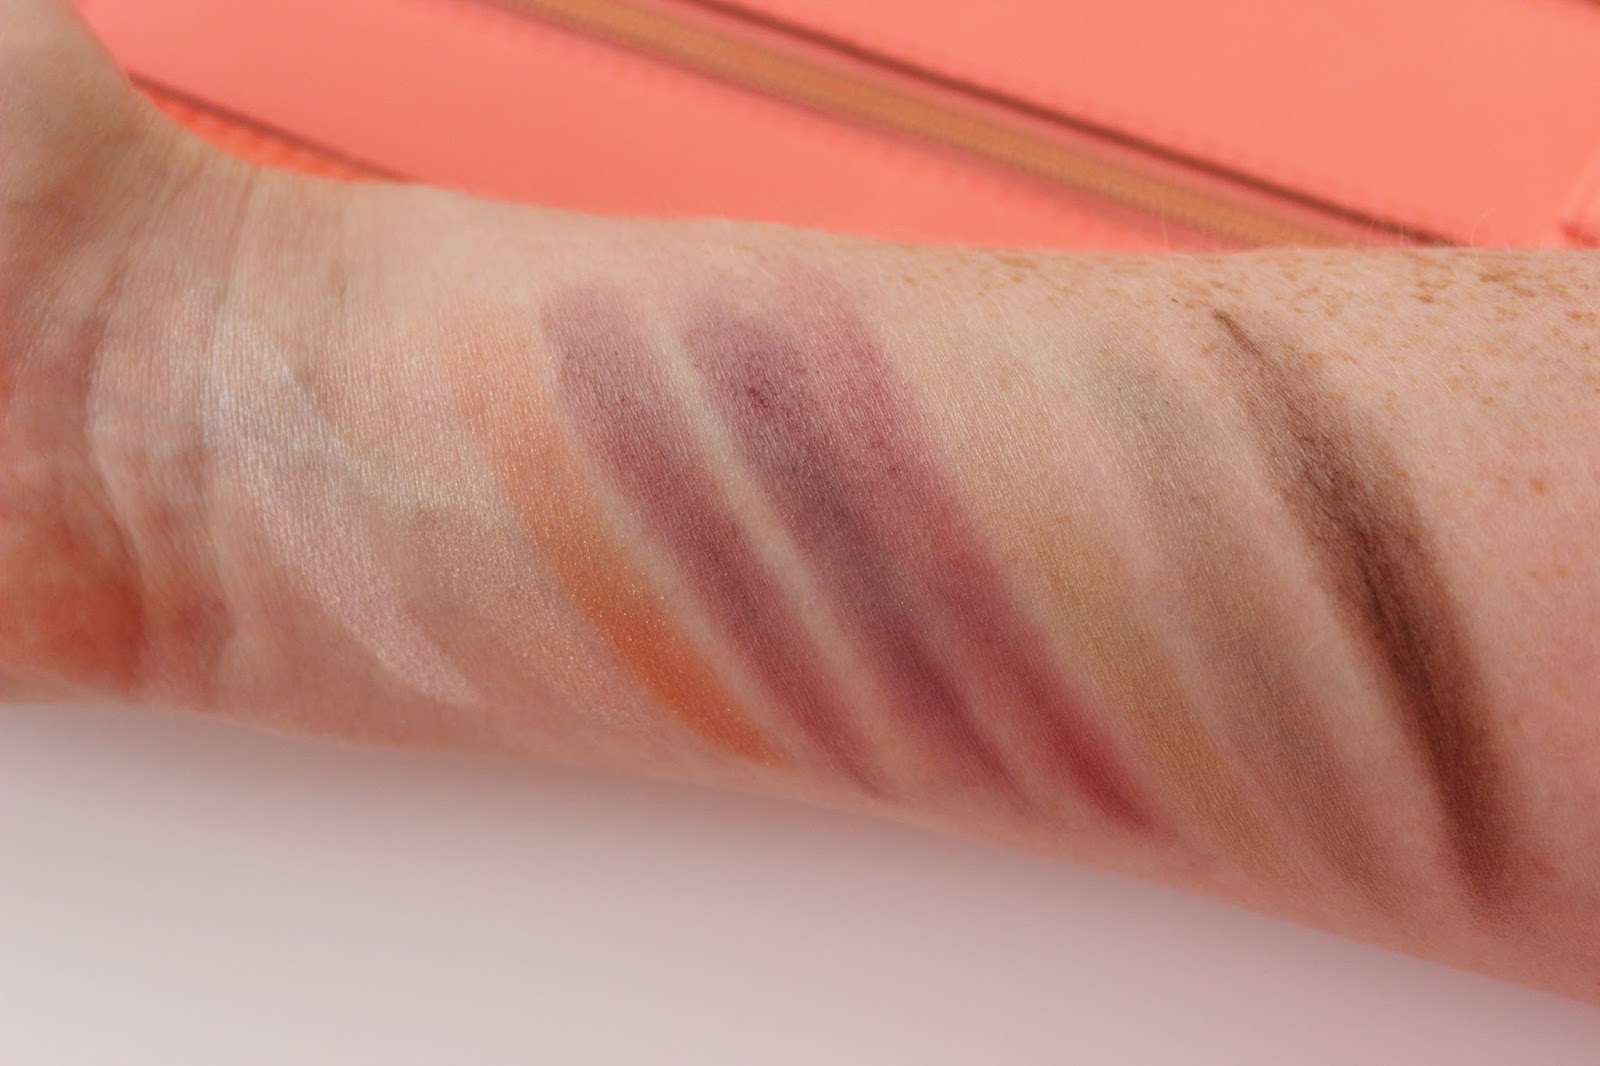 GOSH to enjoy in New York eye shadow palette swatches